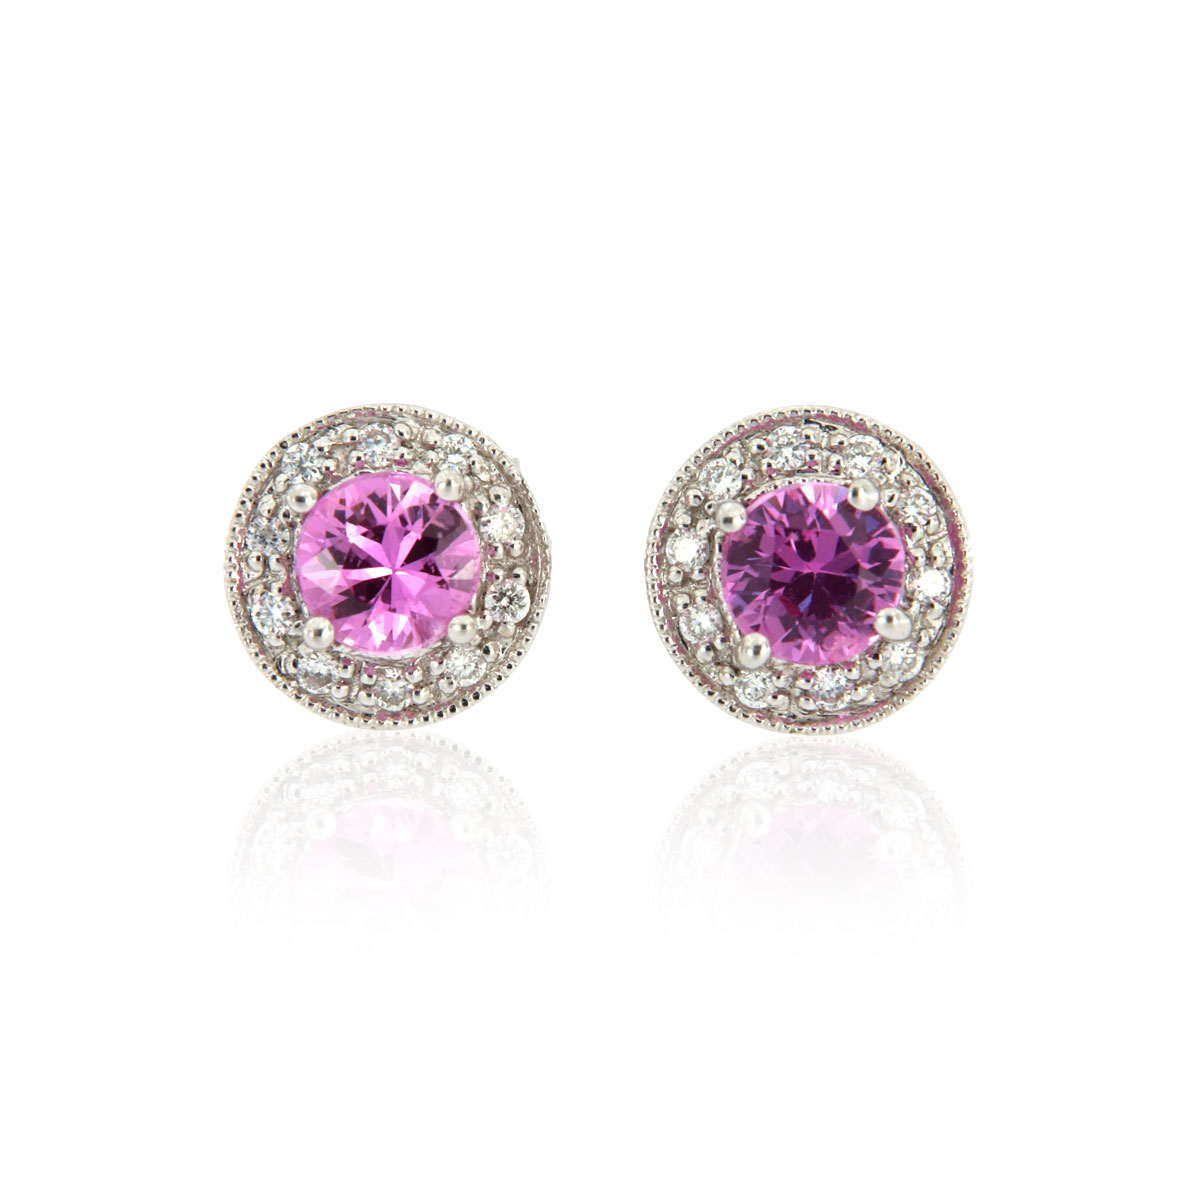 14K White Gold Halo Diamond & Pink Sapphires Earrings ( 3/4 ct. tw)